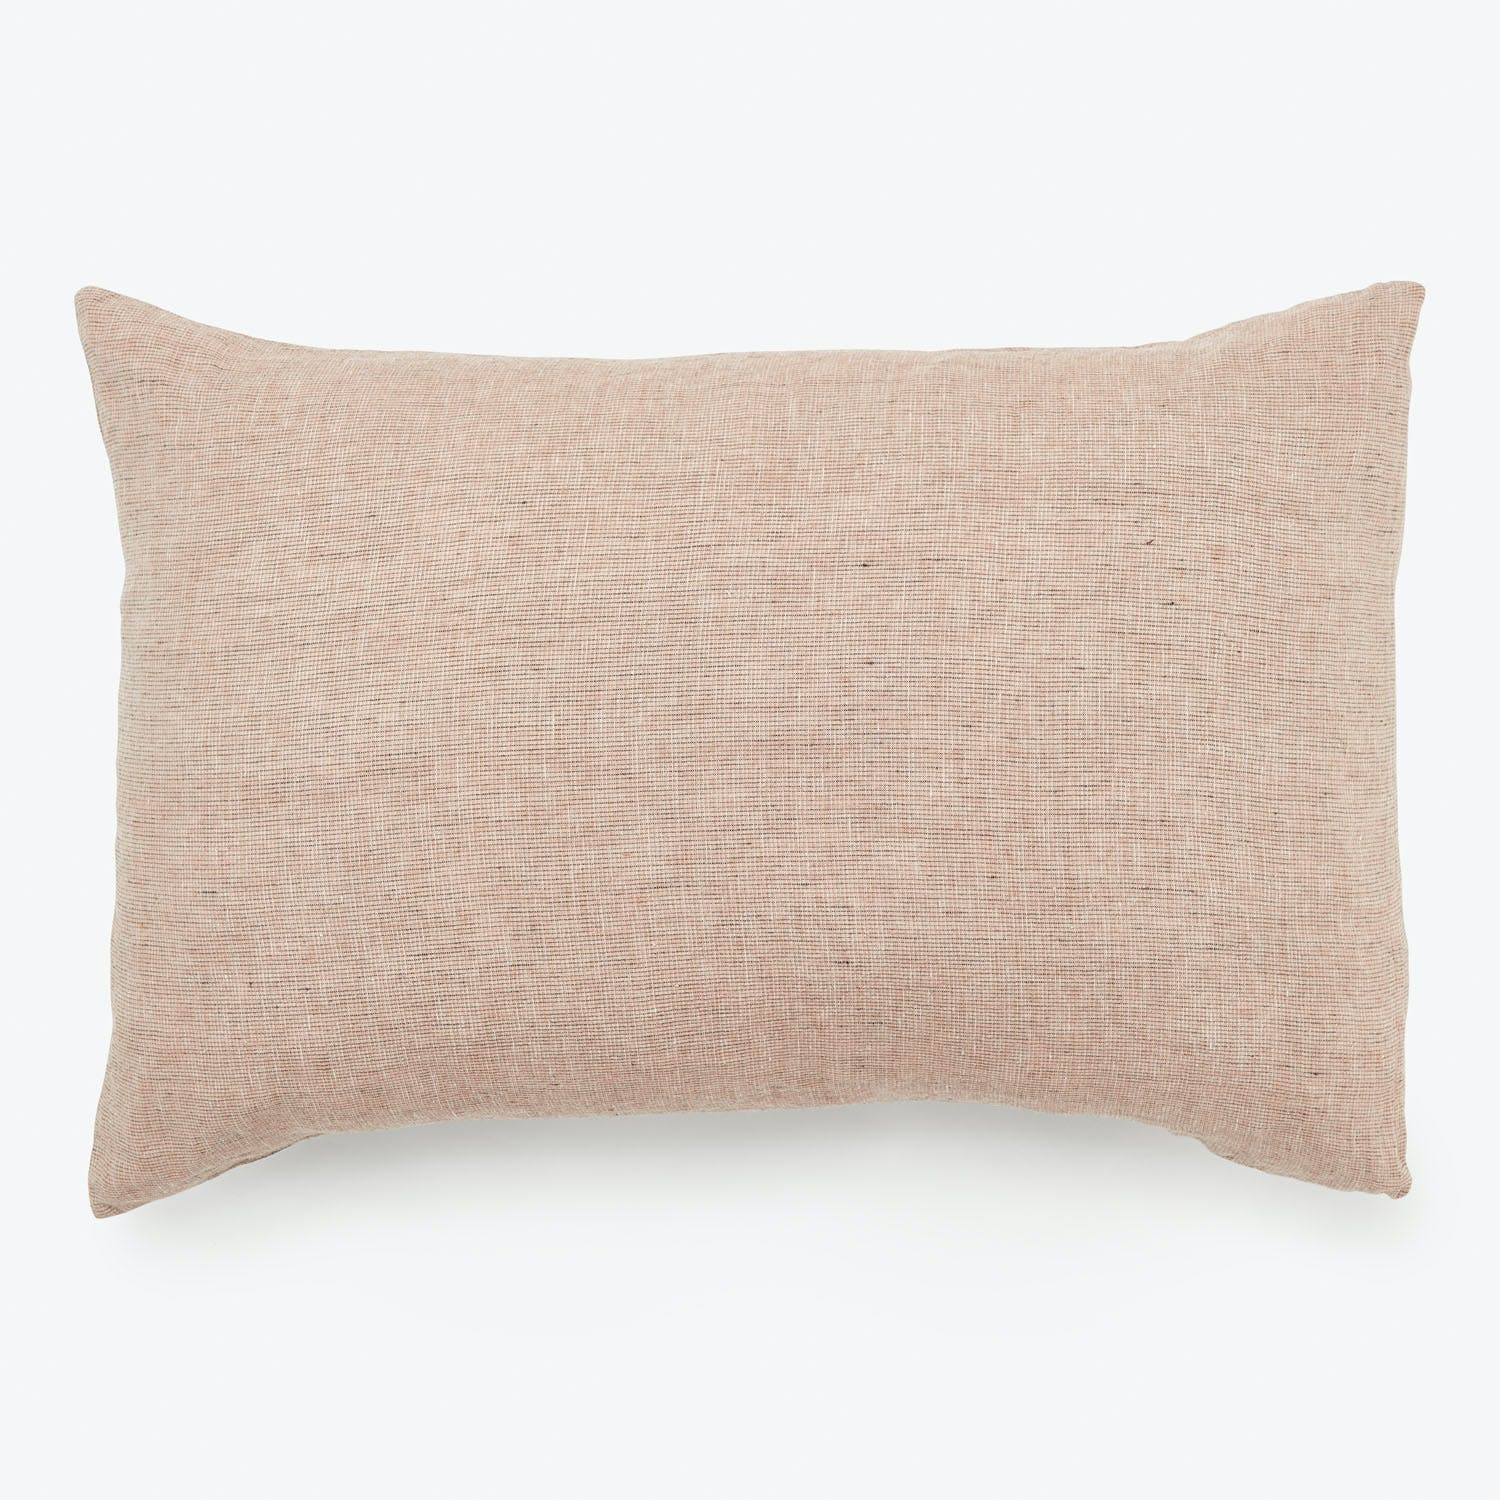 Maison de Vacances Linen Shaker Standard Pillowcase Melon